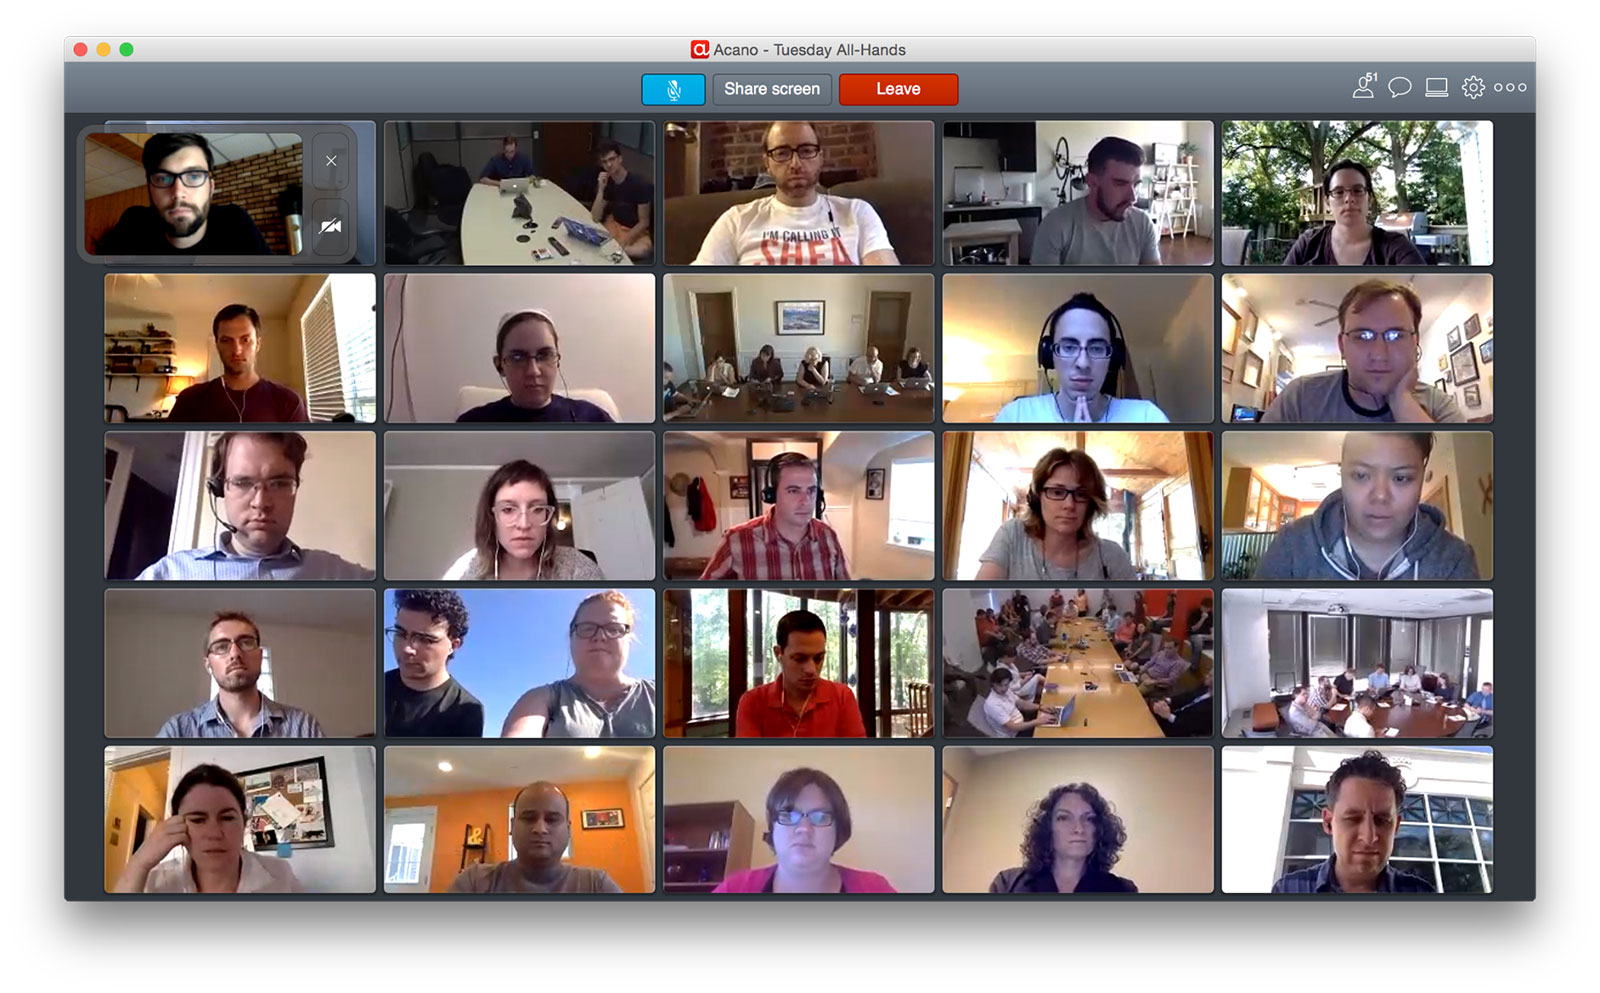 A grid of 18F team members using video chat to attend a meeting.